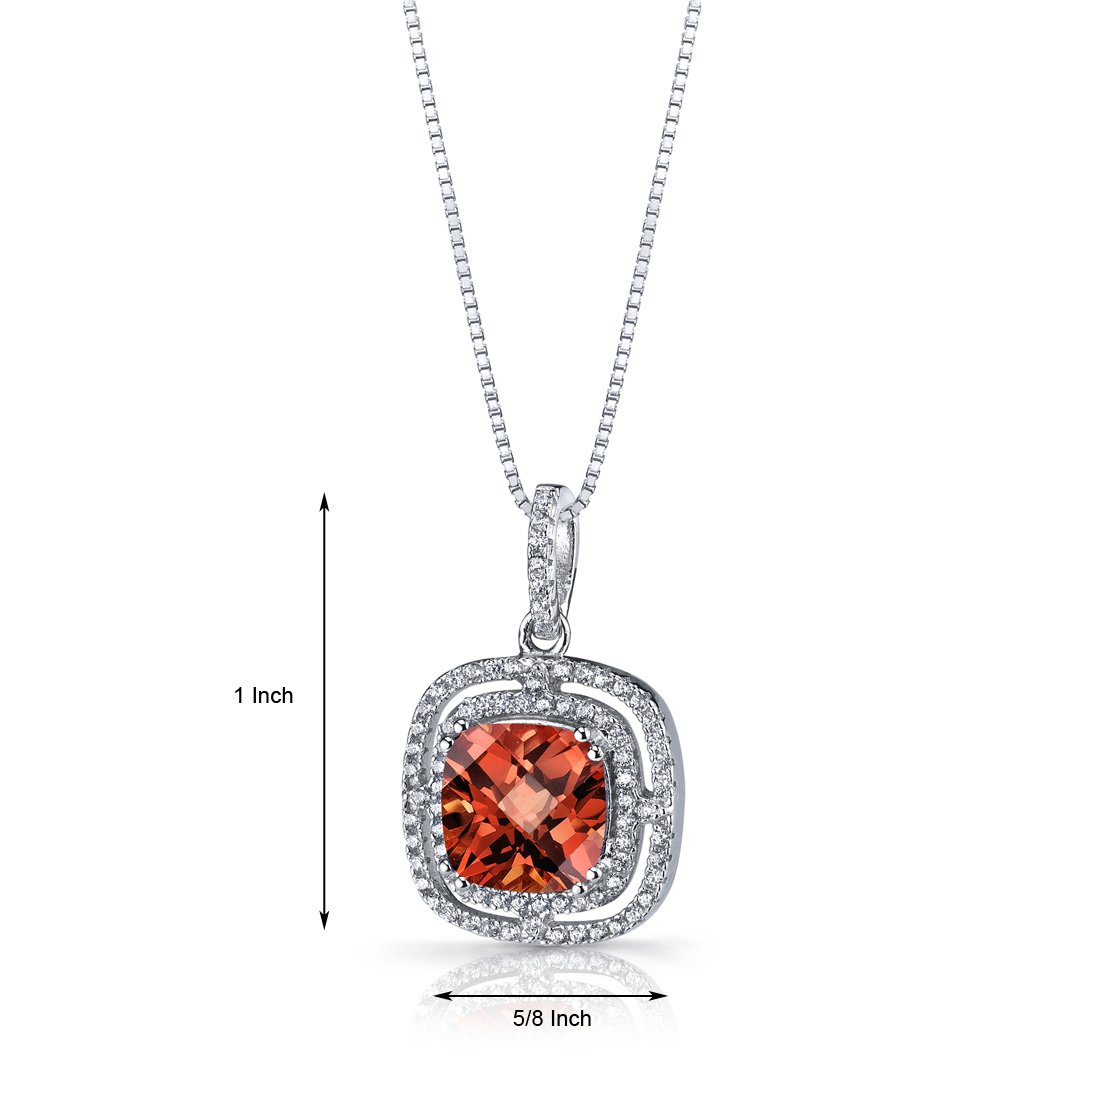 Created Padparadscha Sapphire Cushion Cut Pendant Necklace Sterling Silver 4.25 Carats